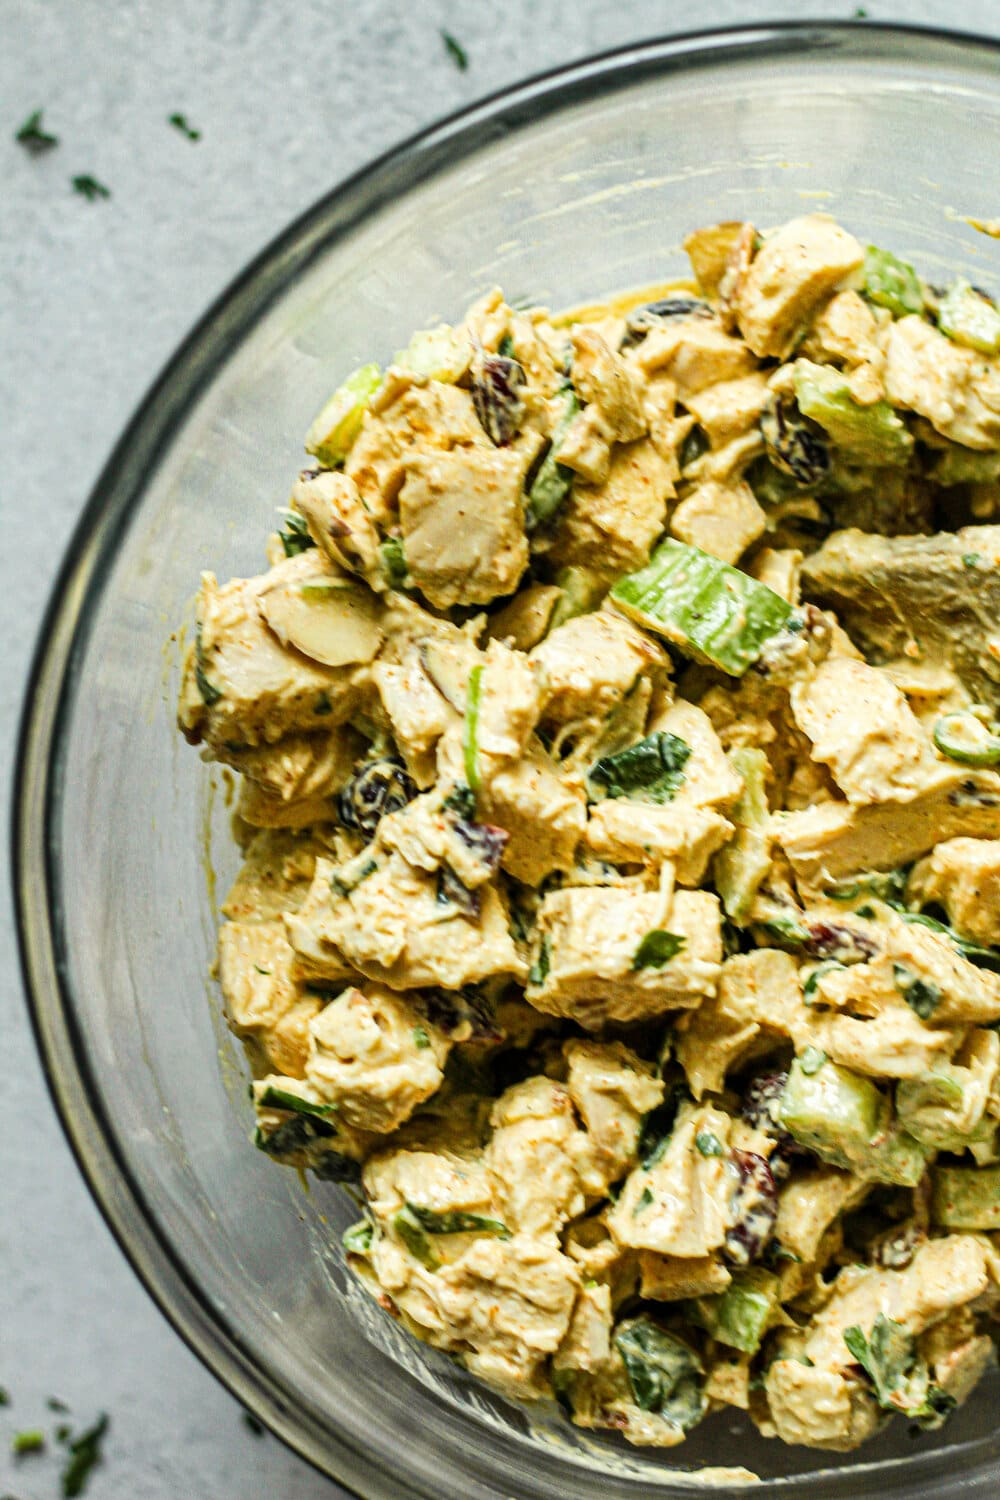 Curry Chicken Salad ingredients stirred together in glass mixing bowl